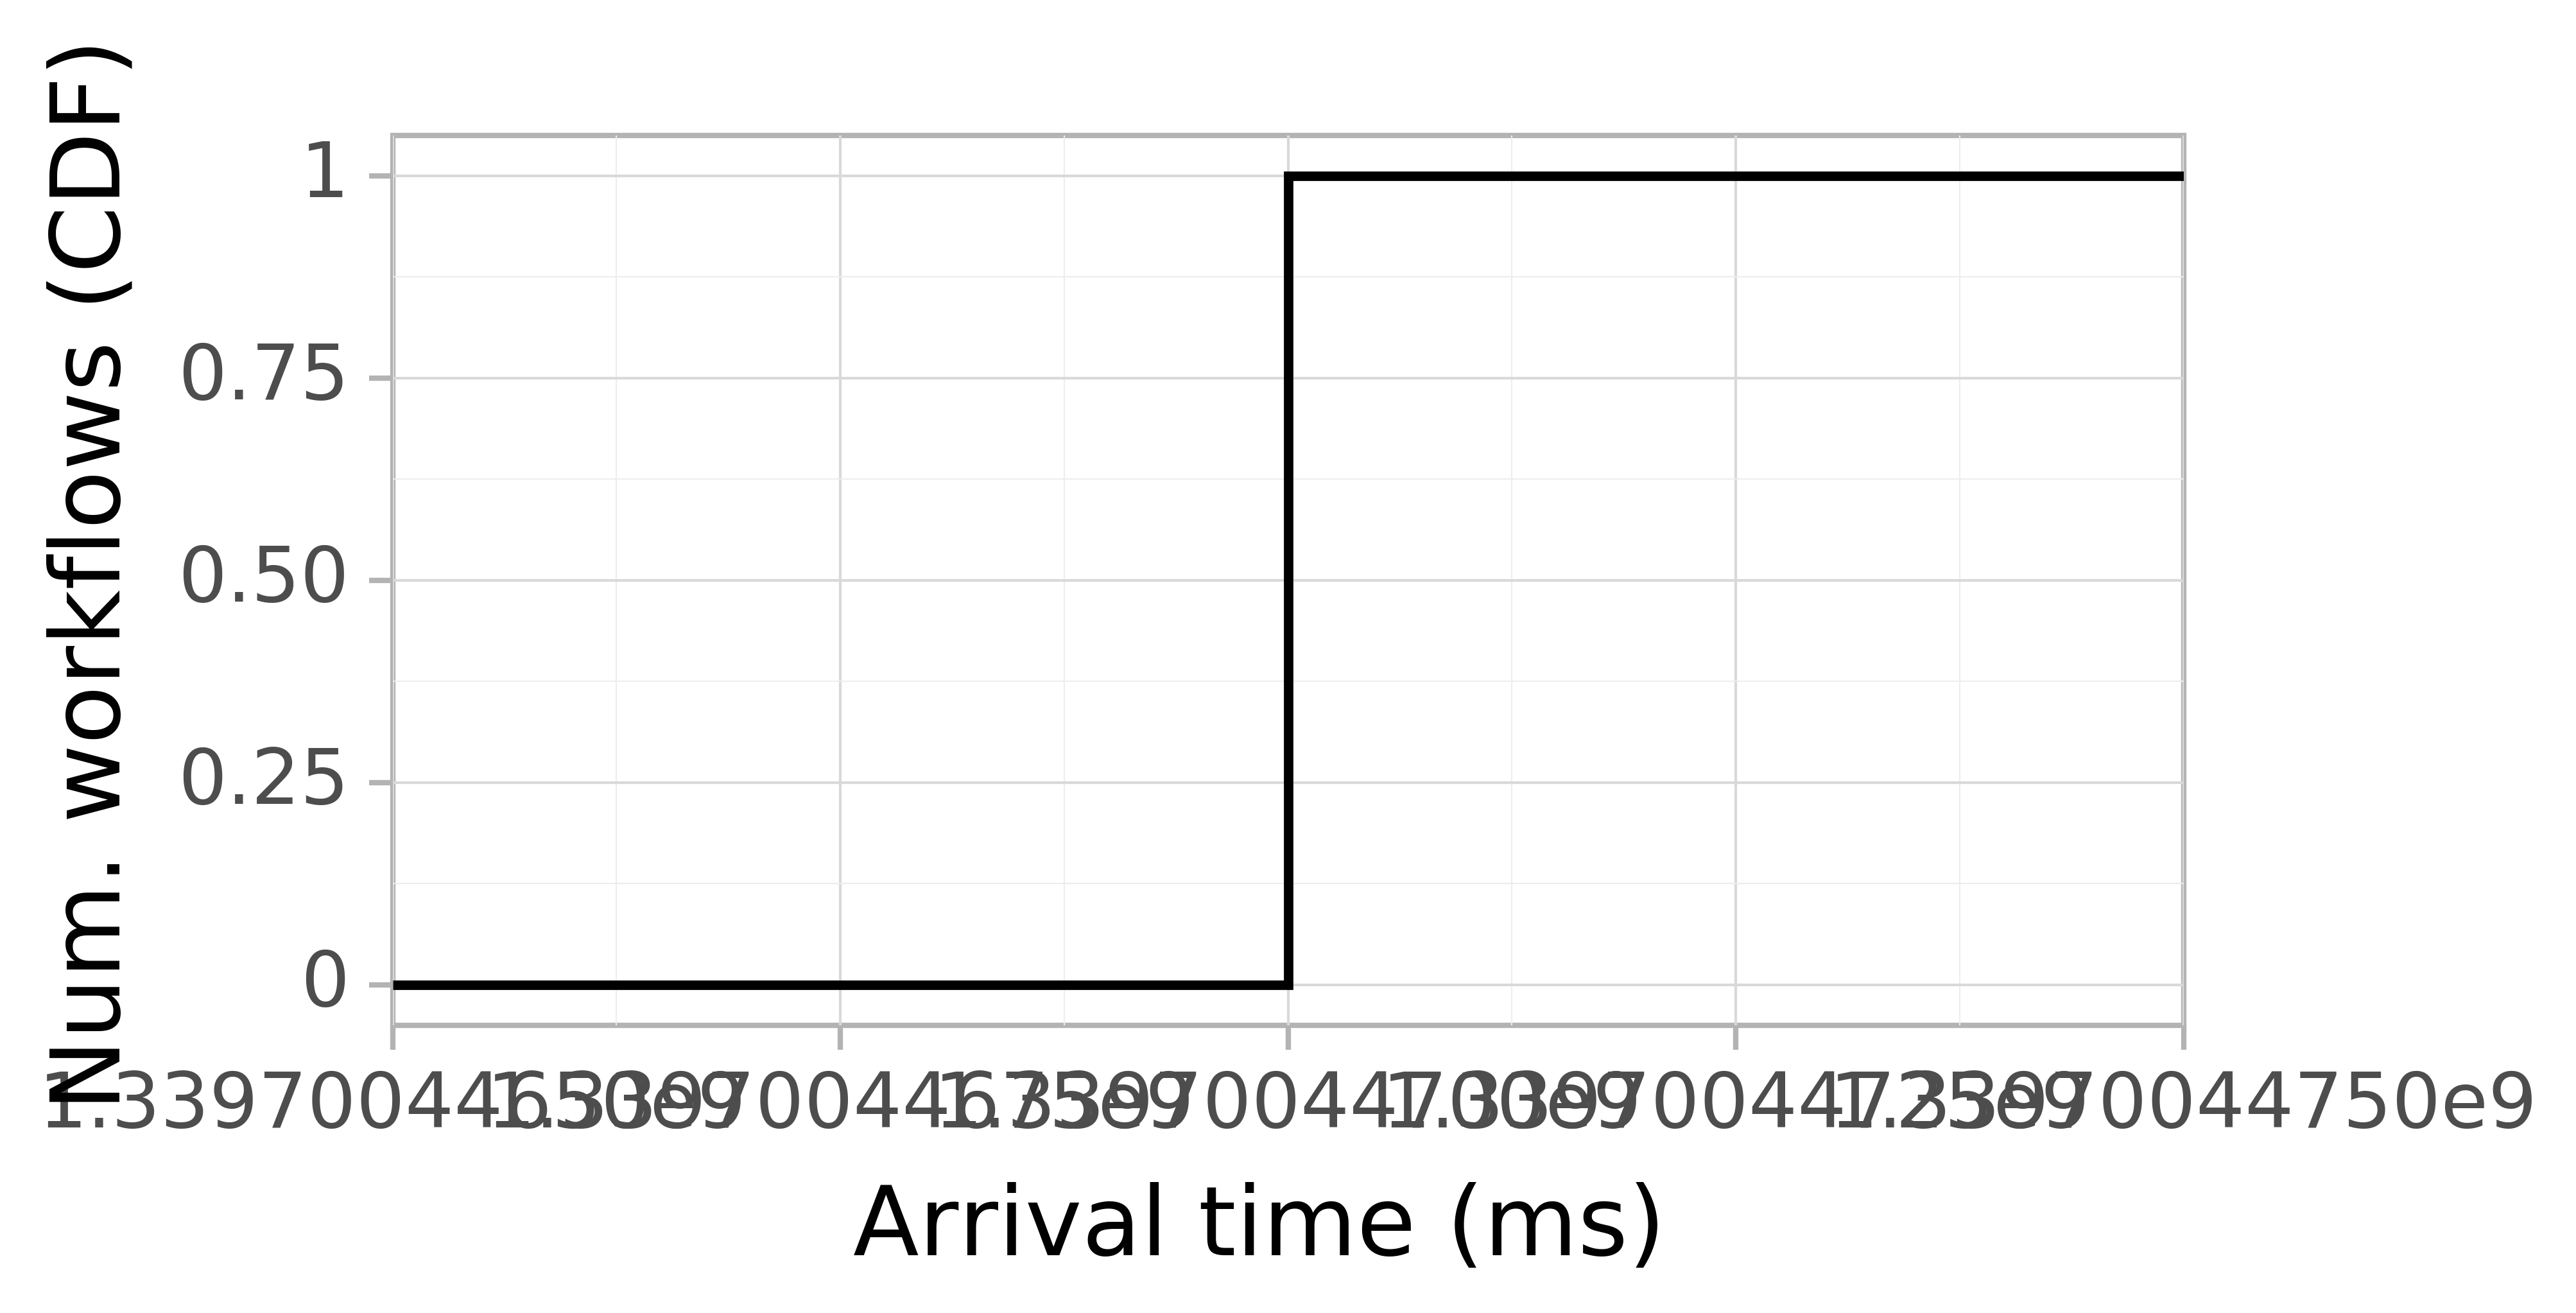 Job arrival CDF graph for the Pegasus_P8 trace.